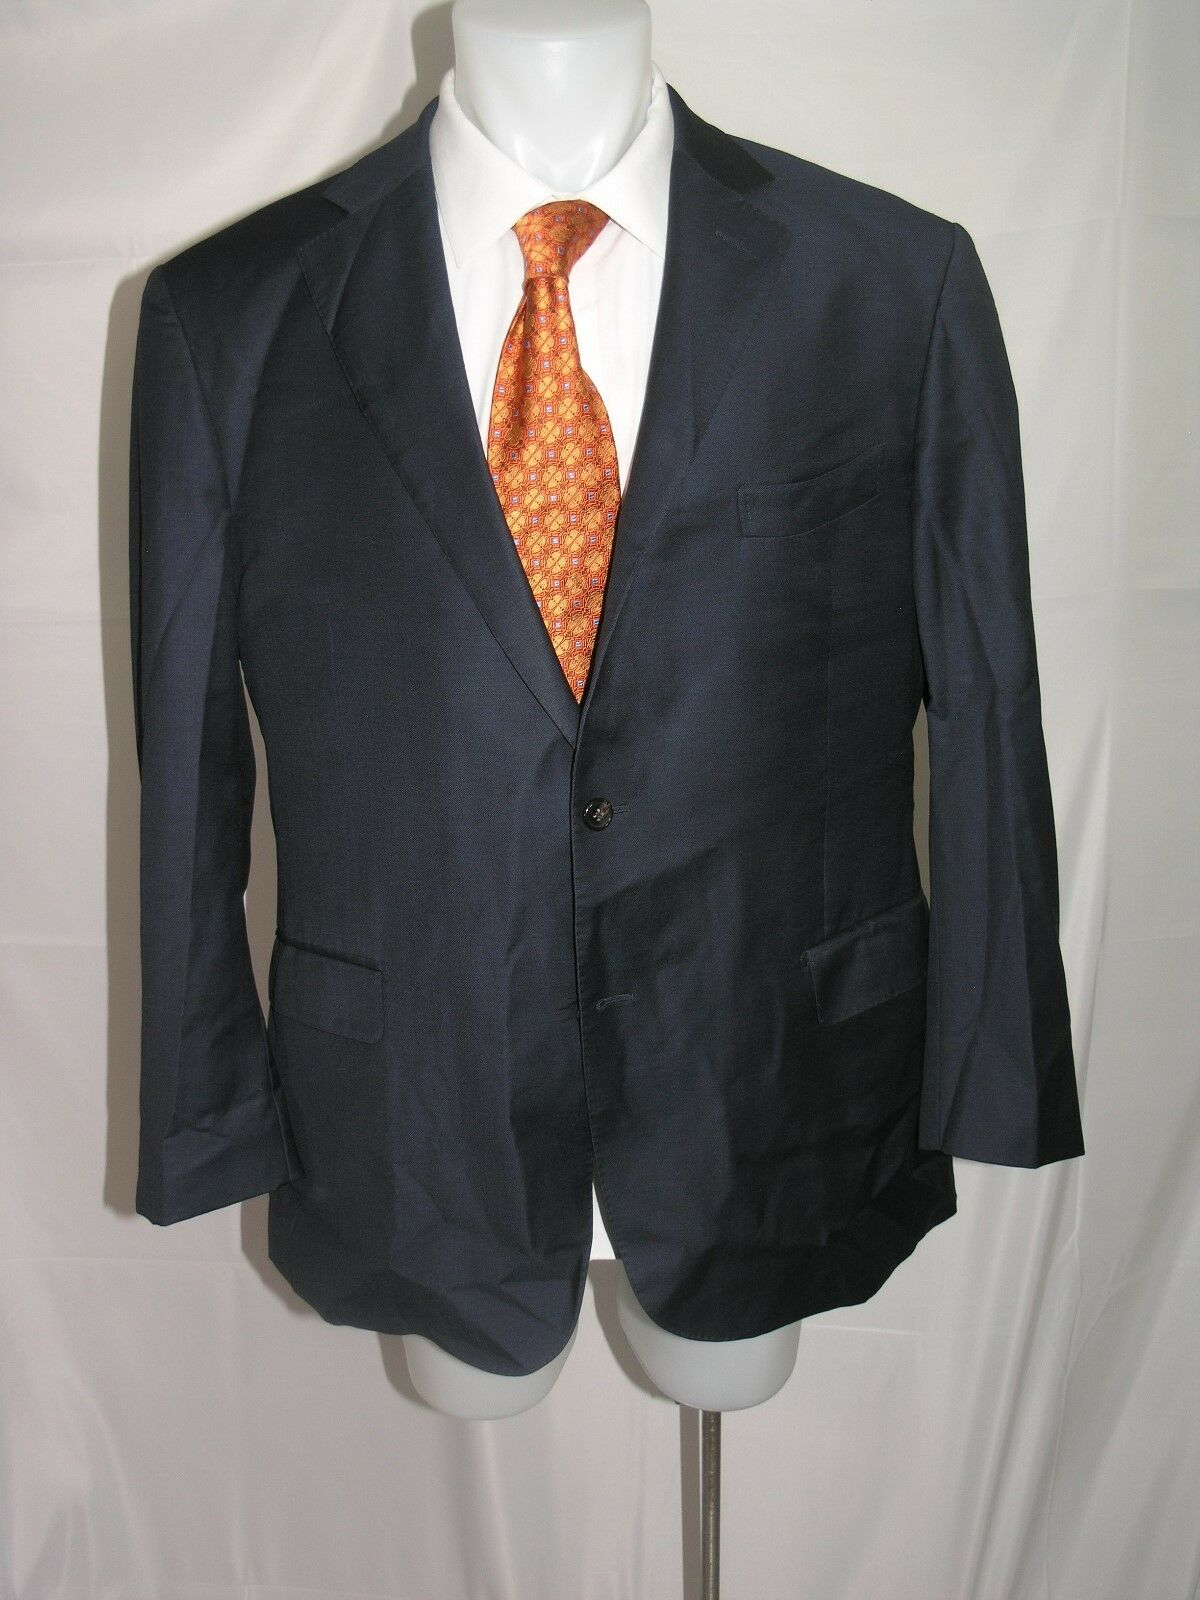 Suitsupply Vitale Barberis Canonico Super 110 Two Button Blazer 50 R